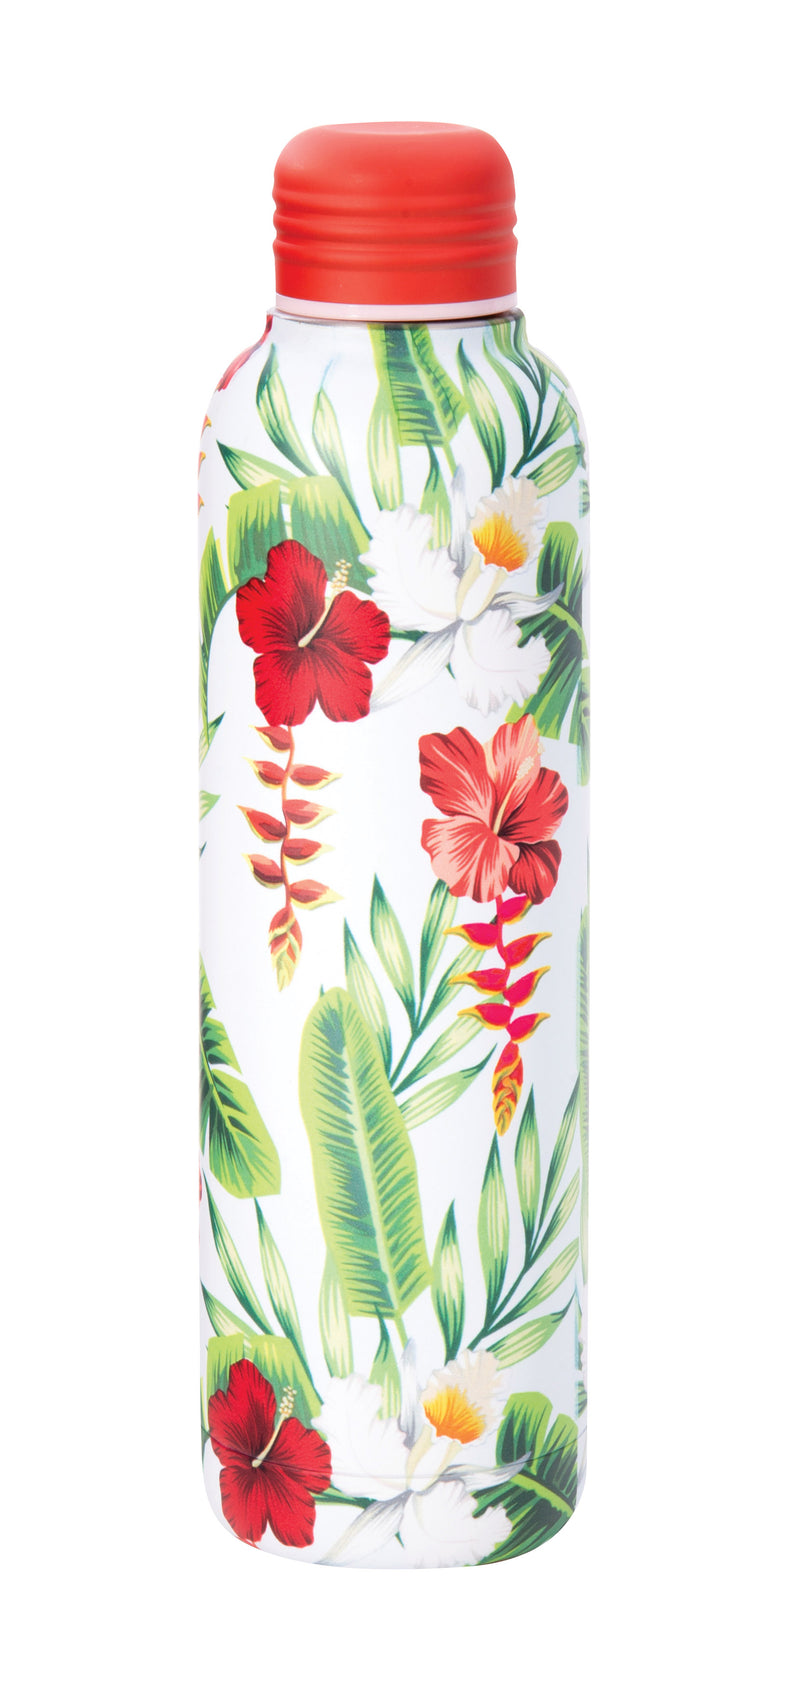 IS GIFT Insulated Stainless Steel Water Bottle 500ml - Tropical White,Stainless Steel Water Bottle, IS Gift - Yum Yum Store